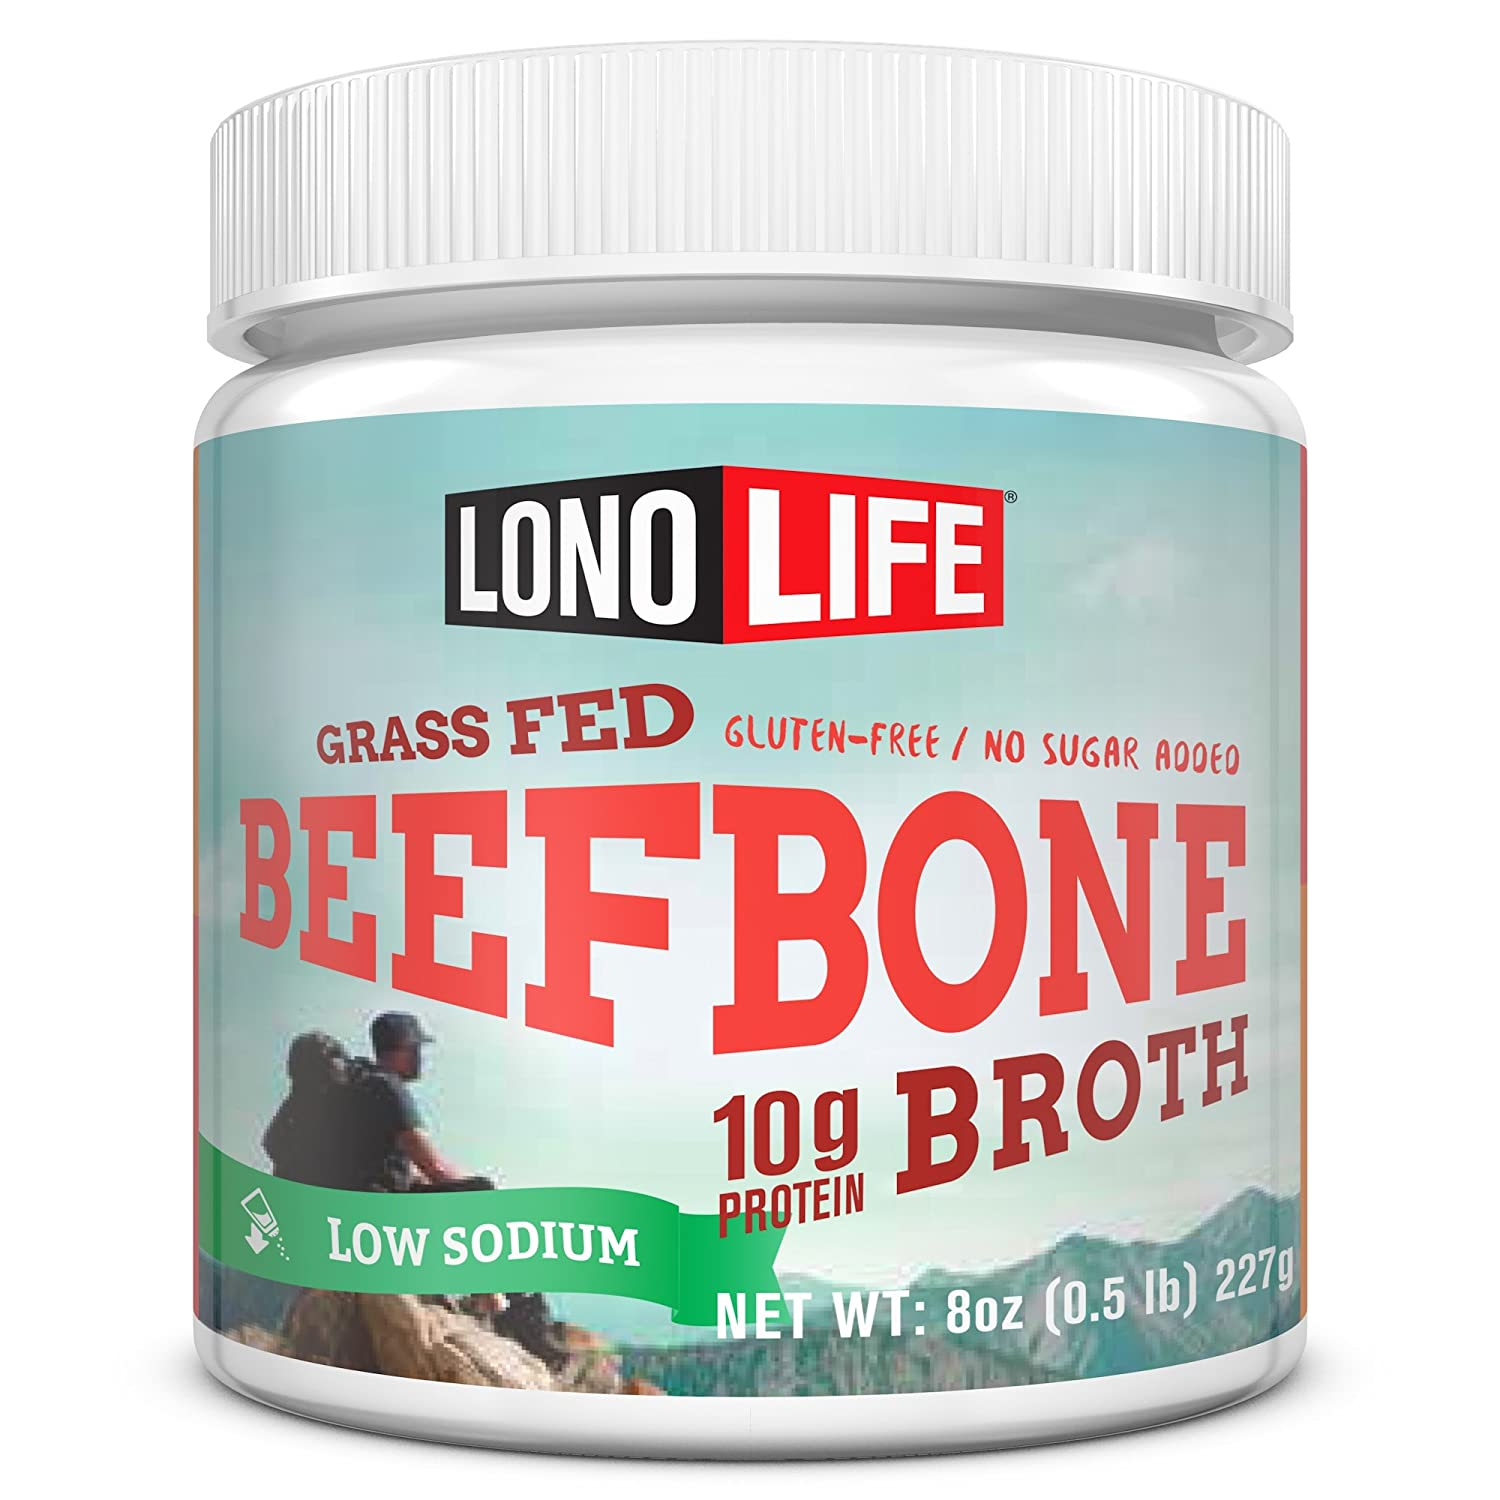 LonoLife Low-Sodium Grass-Fed Beef Bone Broth Powder with 10g Protein, Paleo and Keto Friendly, 8-Ounce Bulk Container